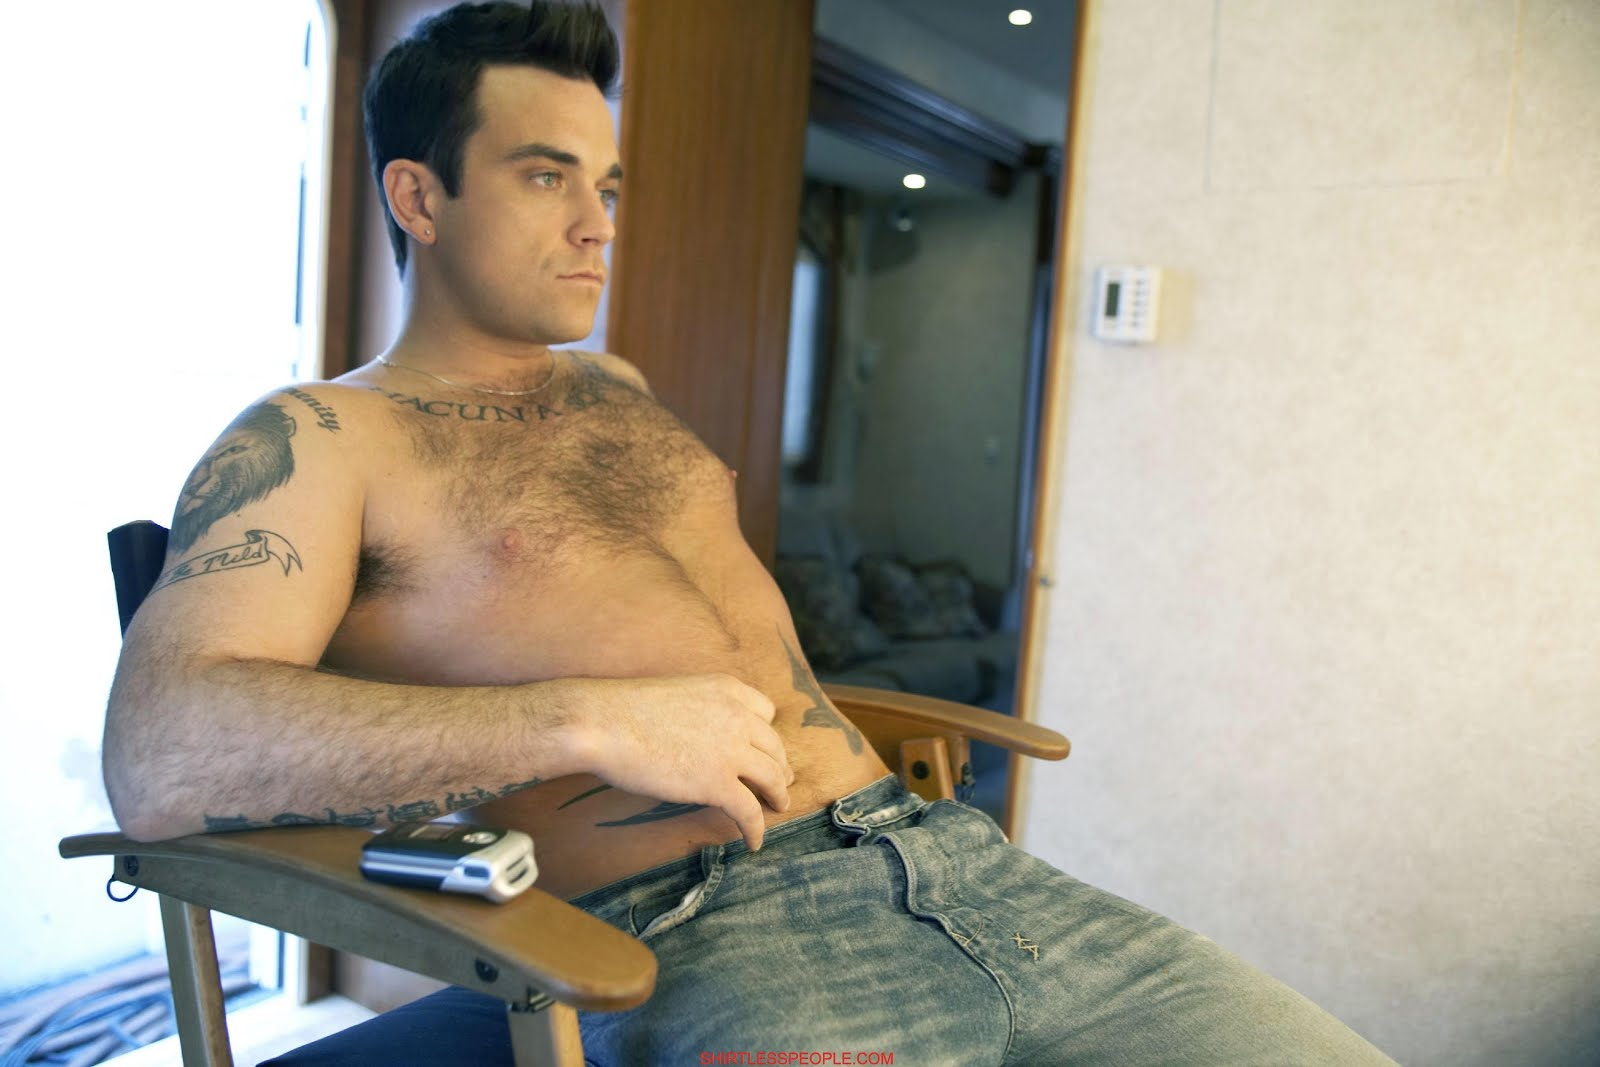 Sorry, that sexy robbie williams with his sexy body share